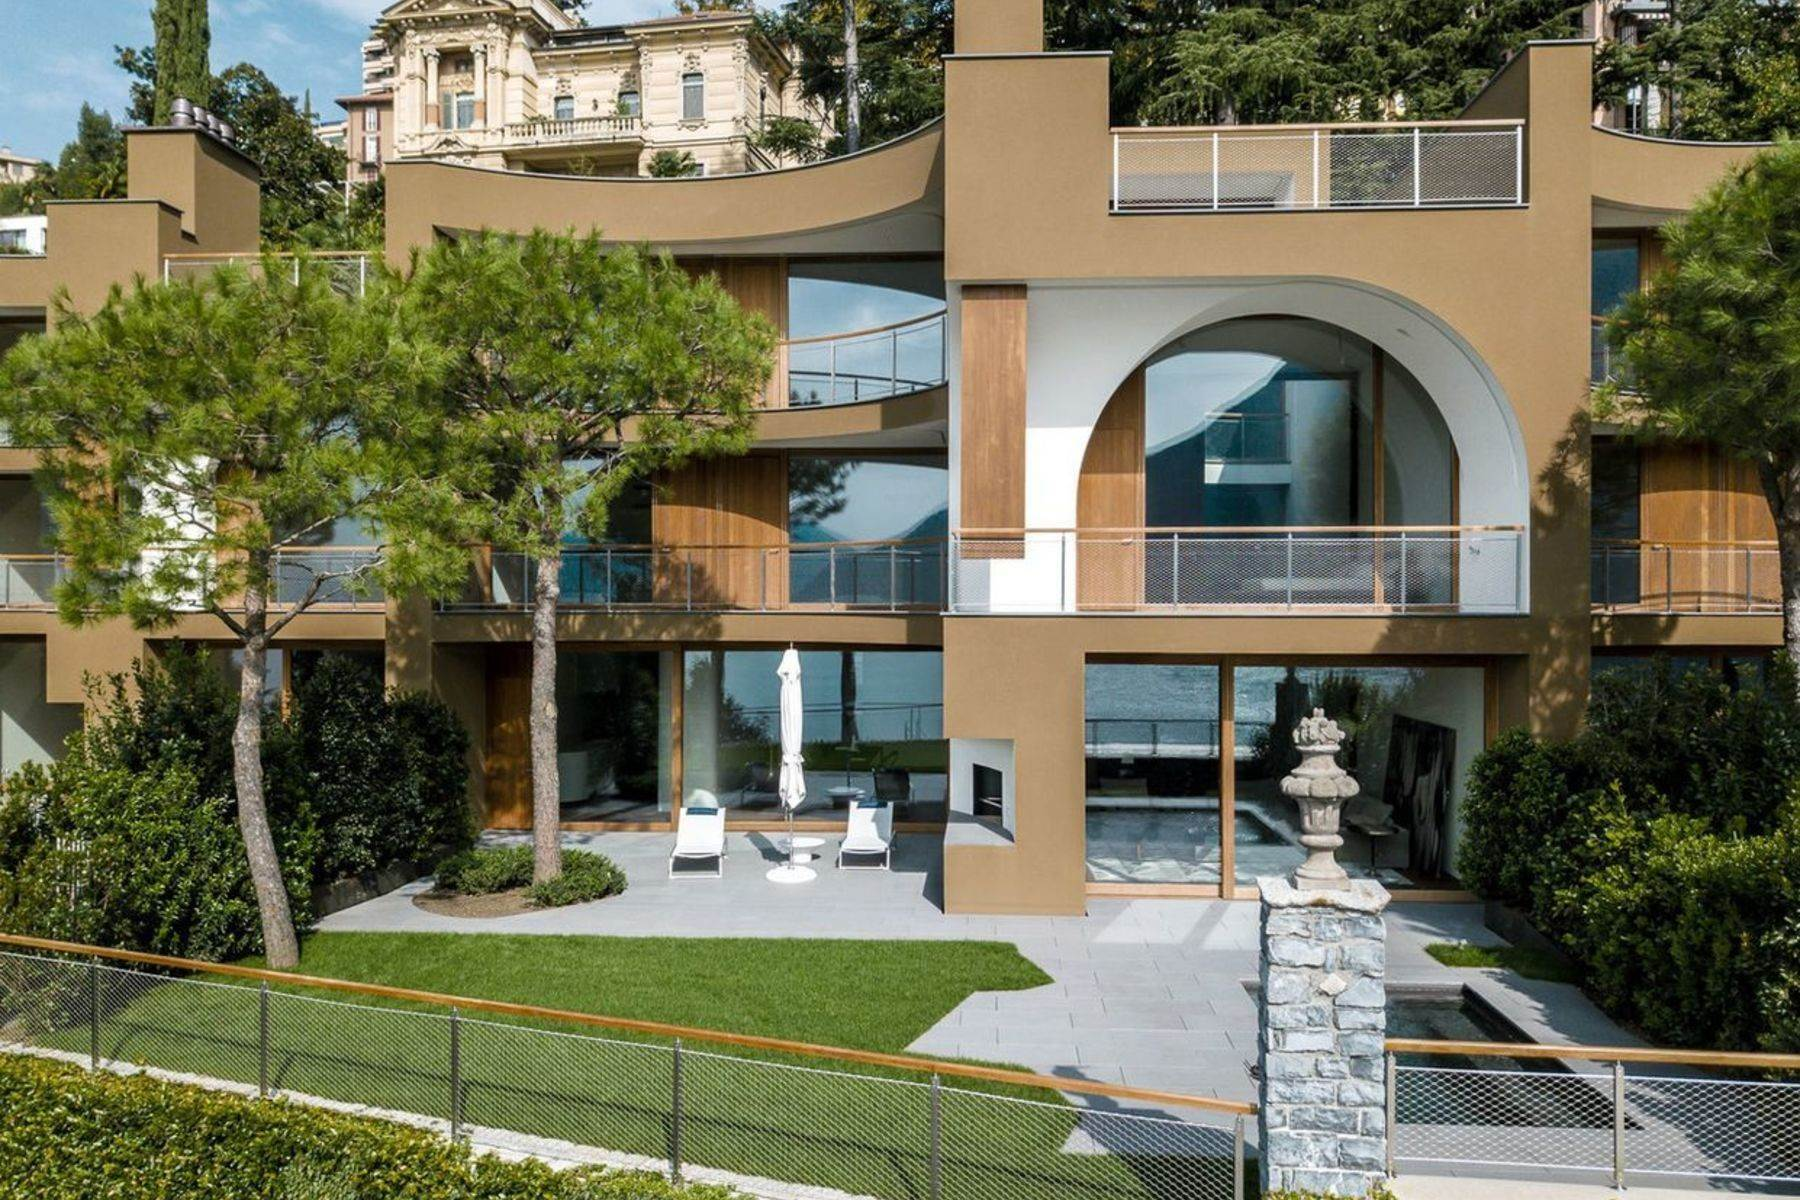 Single Family Homes for Sale at Archi di luce - by Herzog & de Meuron: villa 4 Lugano, Ticino 6900 Switzerland